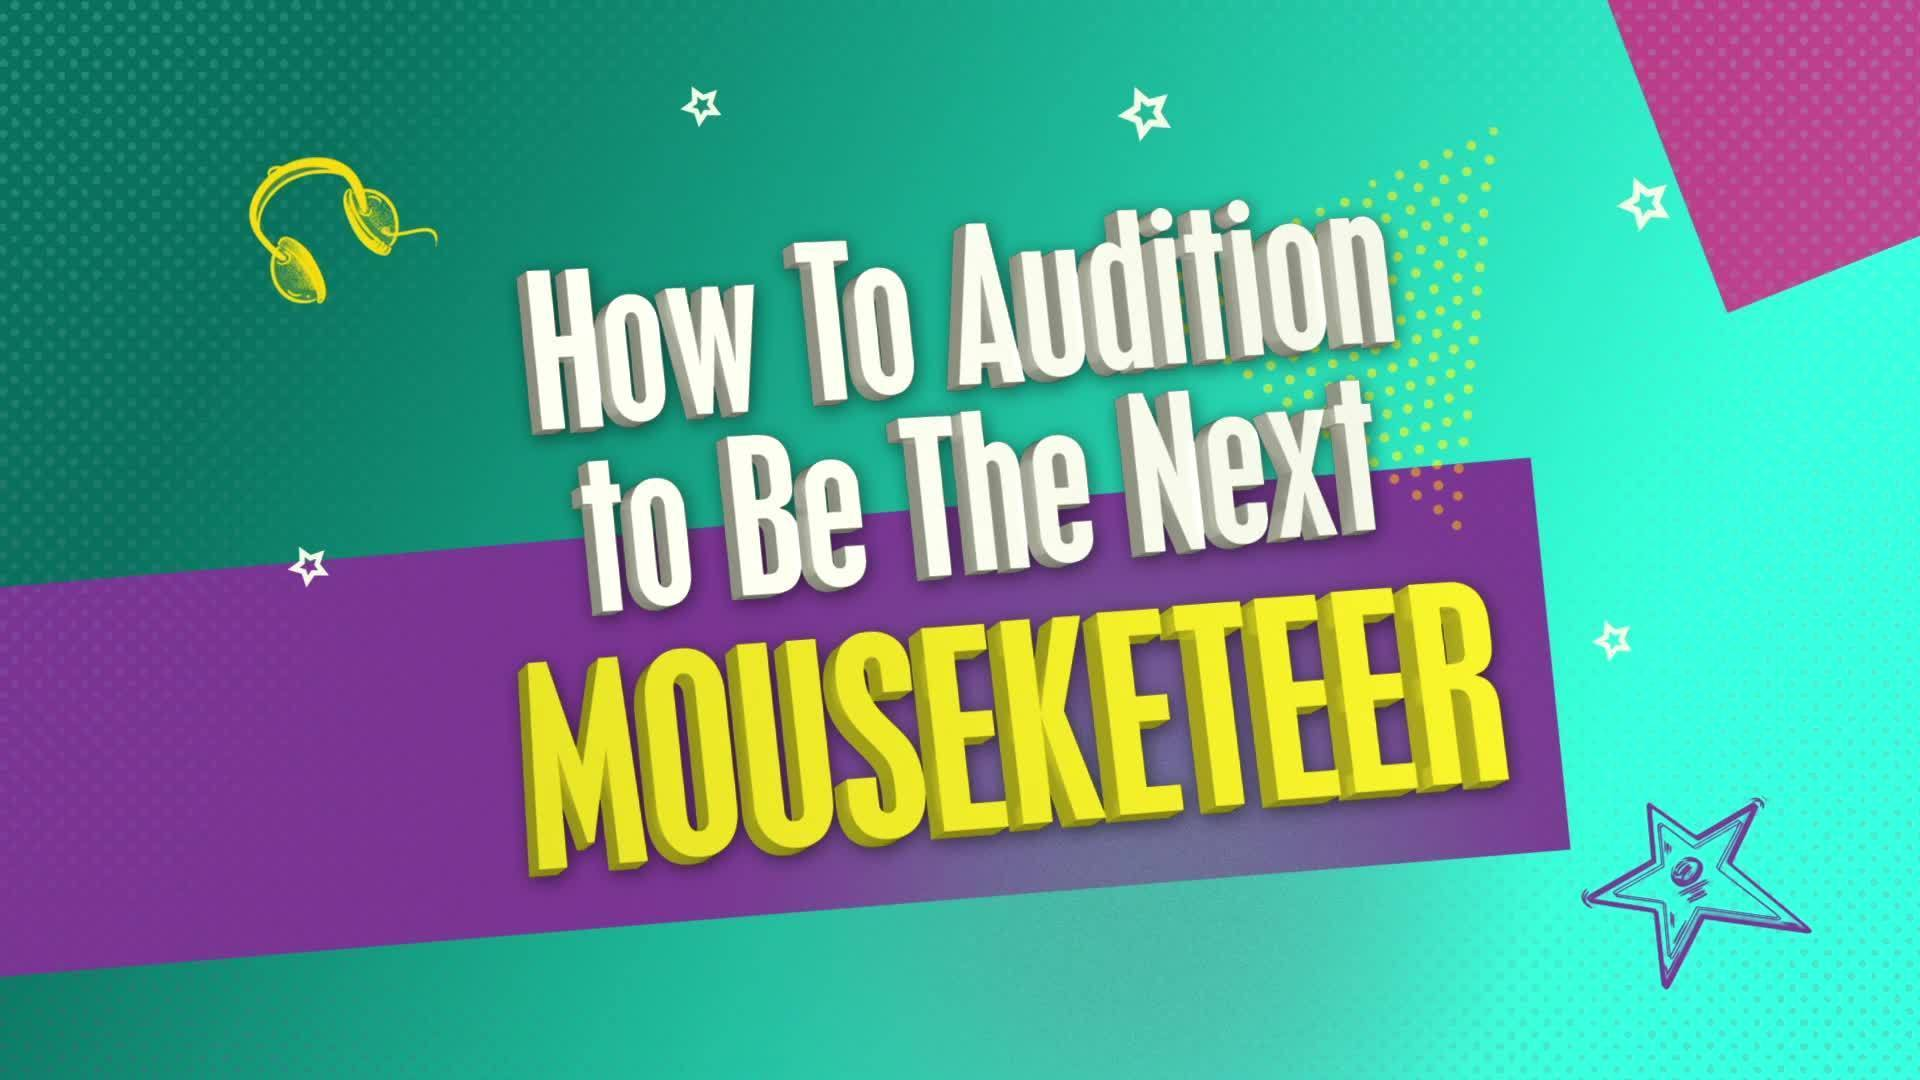 Club Mickey Mouse Season 4 Star Search - How to Audition